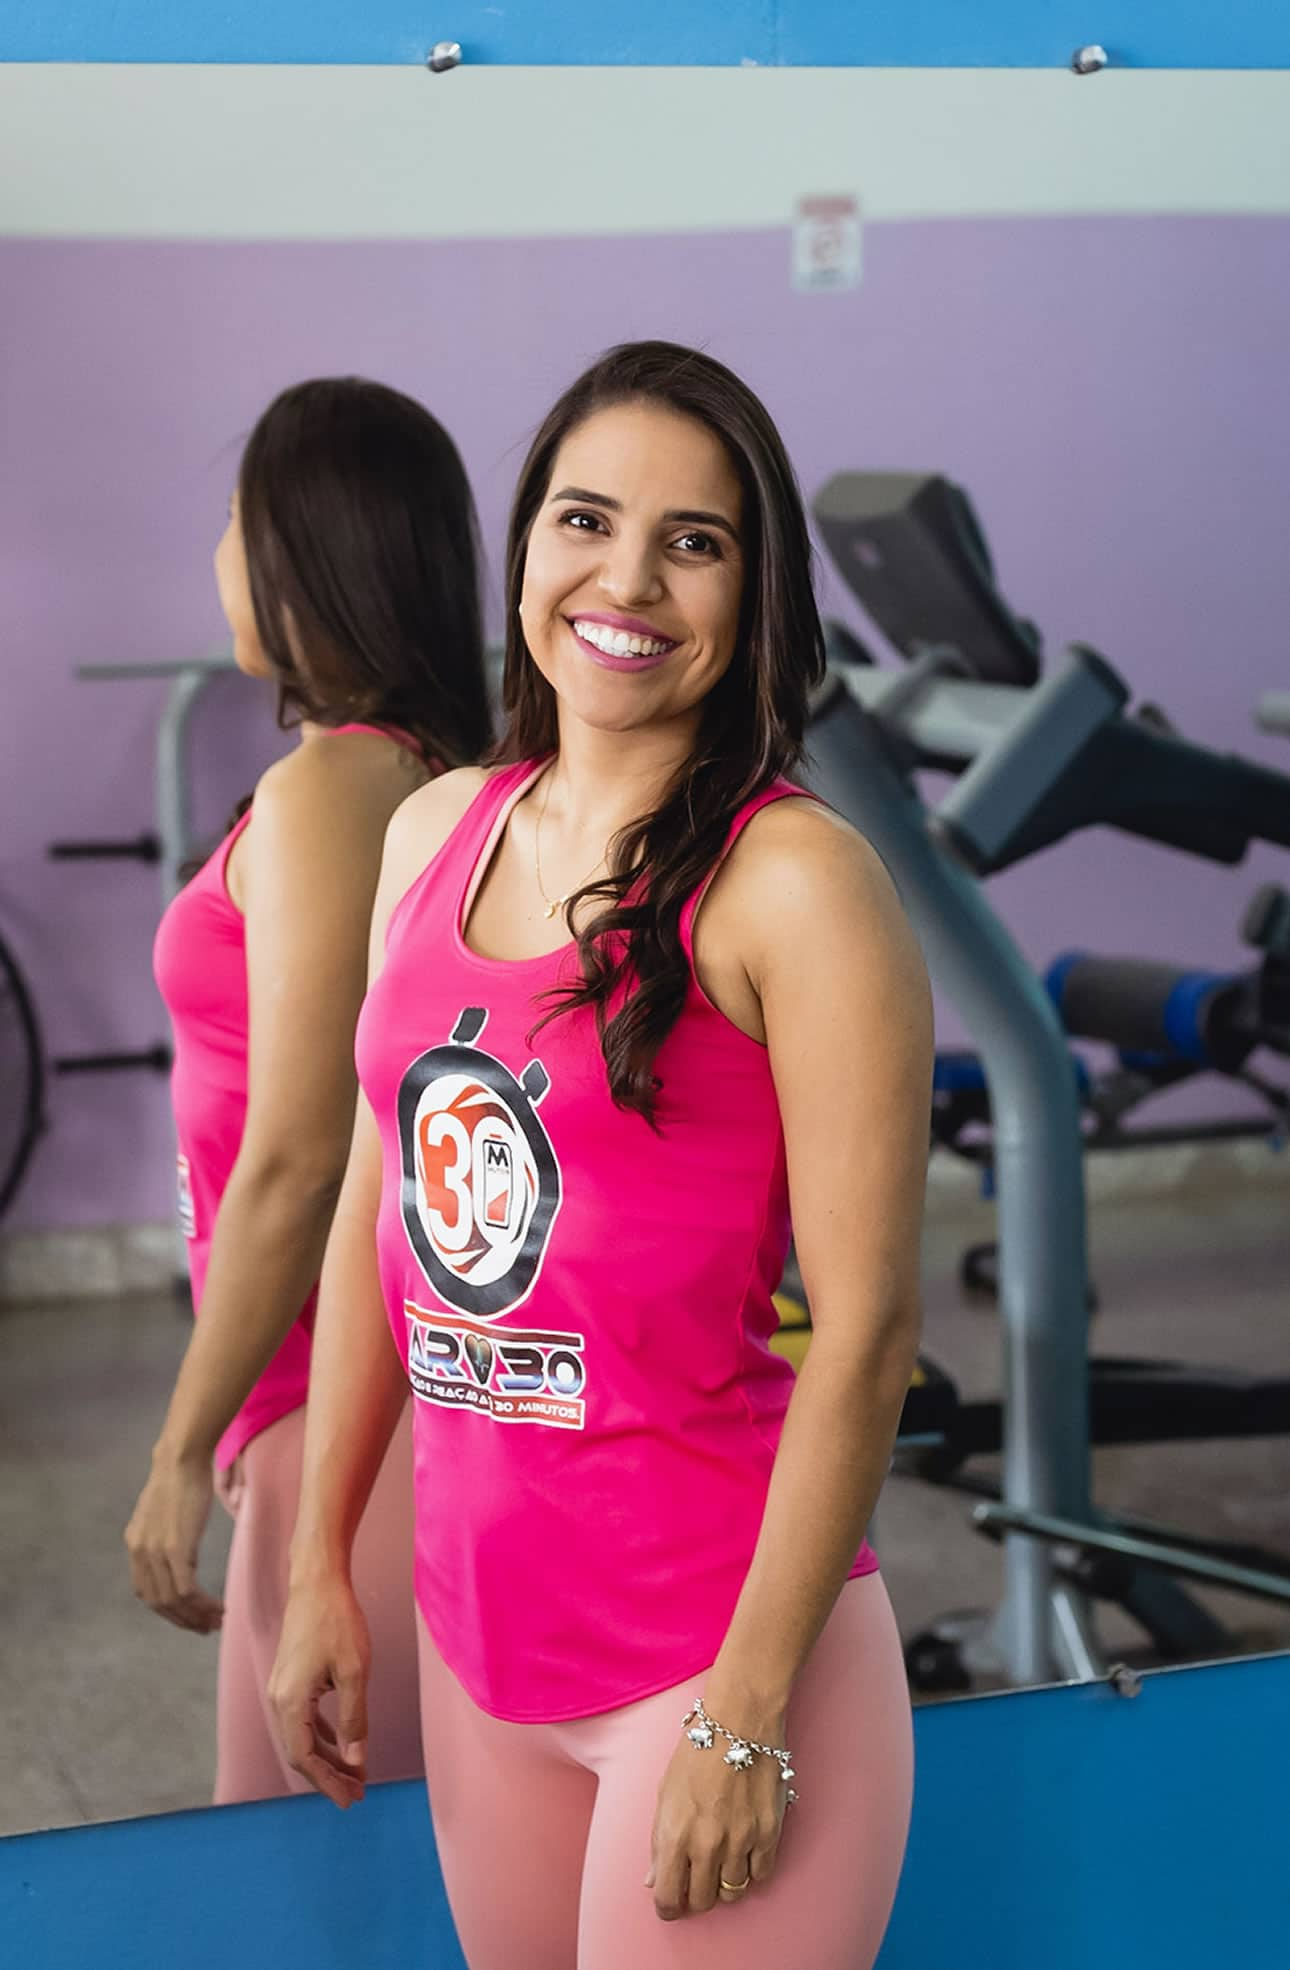 23 09 20 personal trainer pinheirense 5